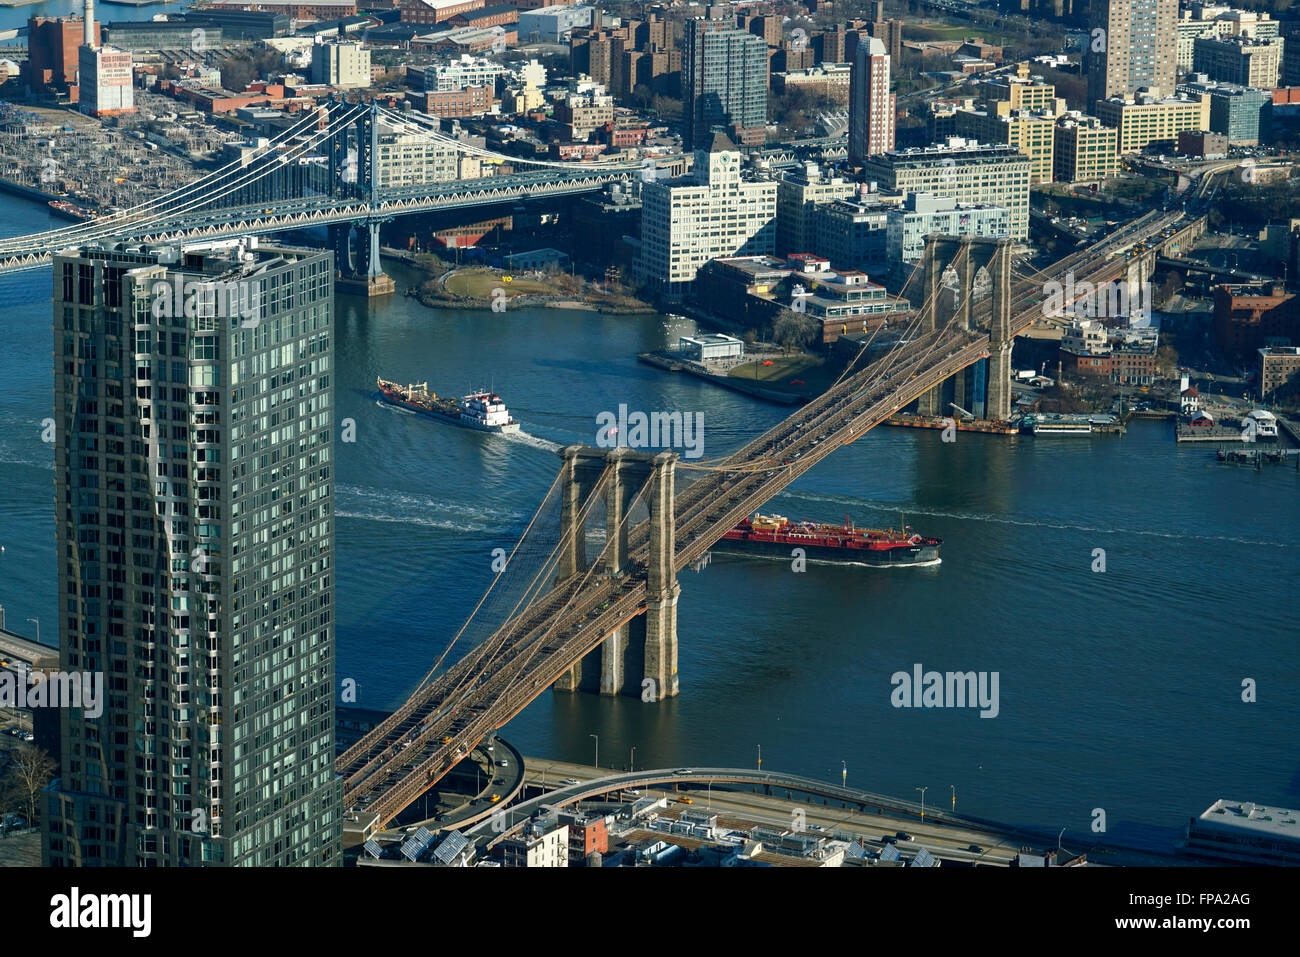 Aerial view of Lower Manhattan with Manhattan Bridge and Brooklyn Bridge over East River and borough of Brooklyn - Stock Image